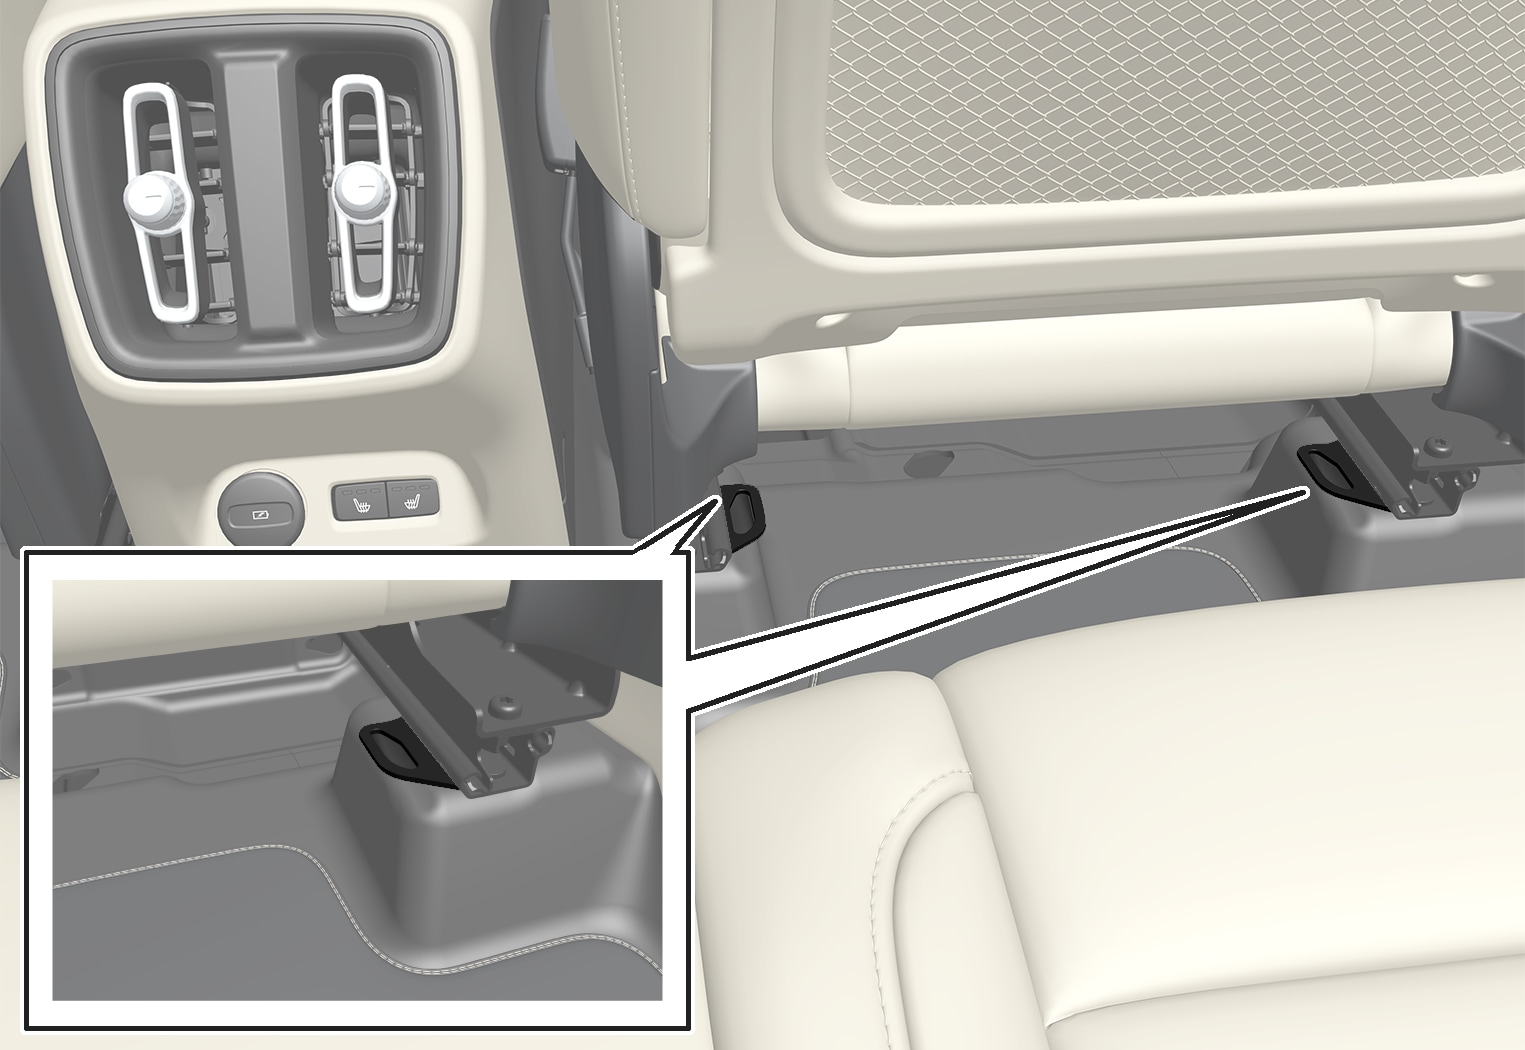 P6-1746-XC40–Safety–Lower tether position rear